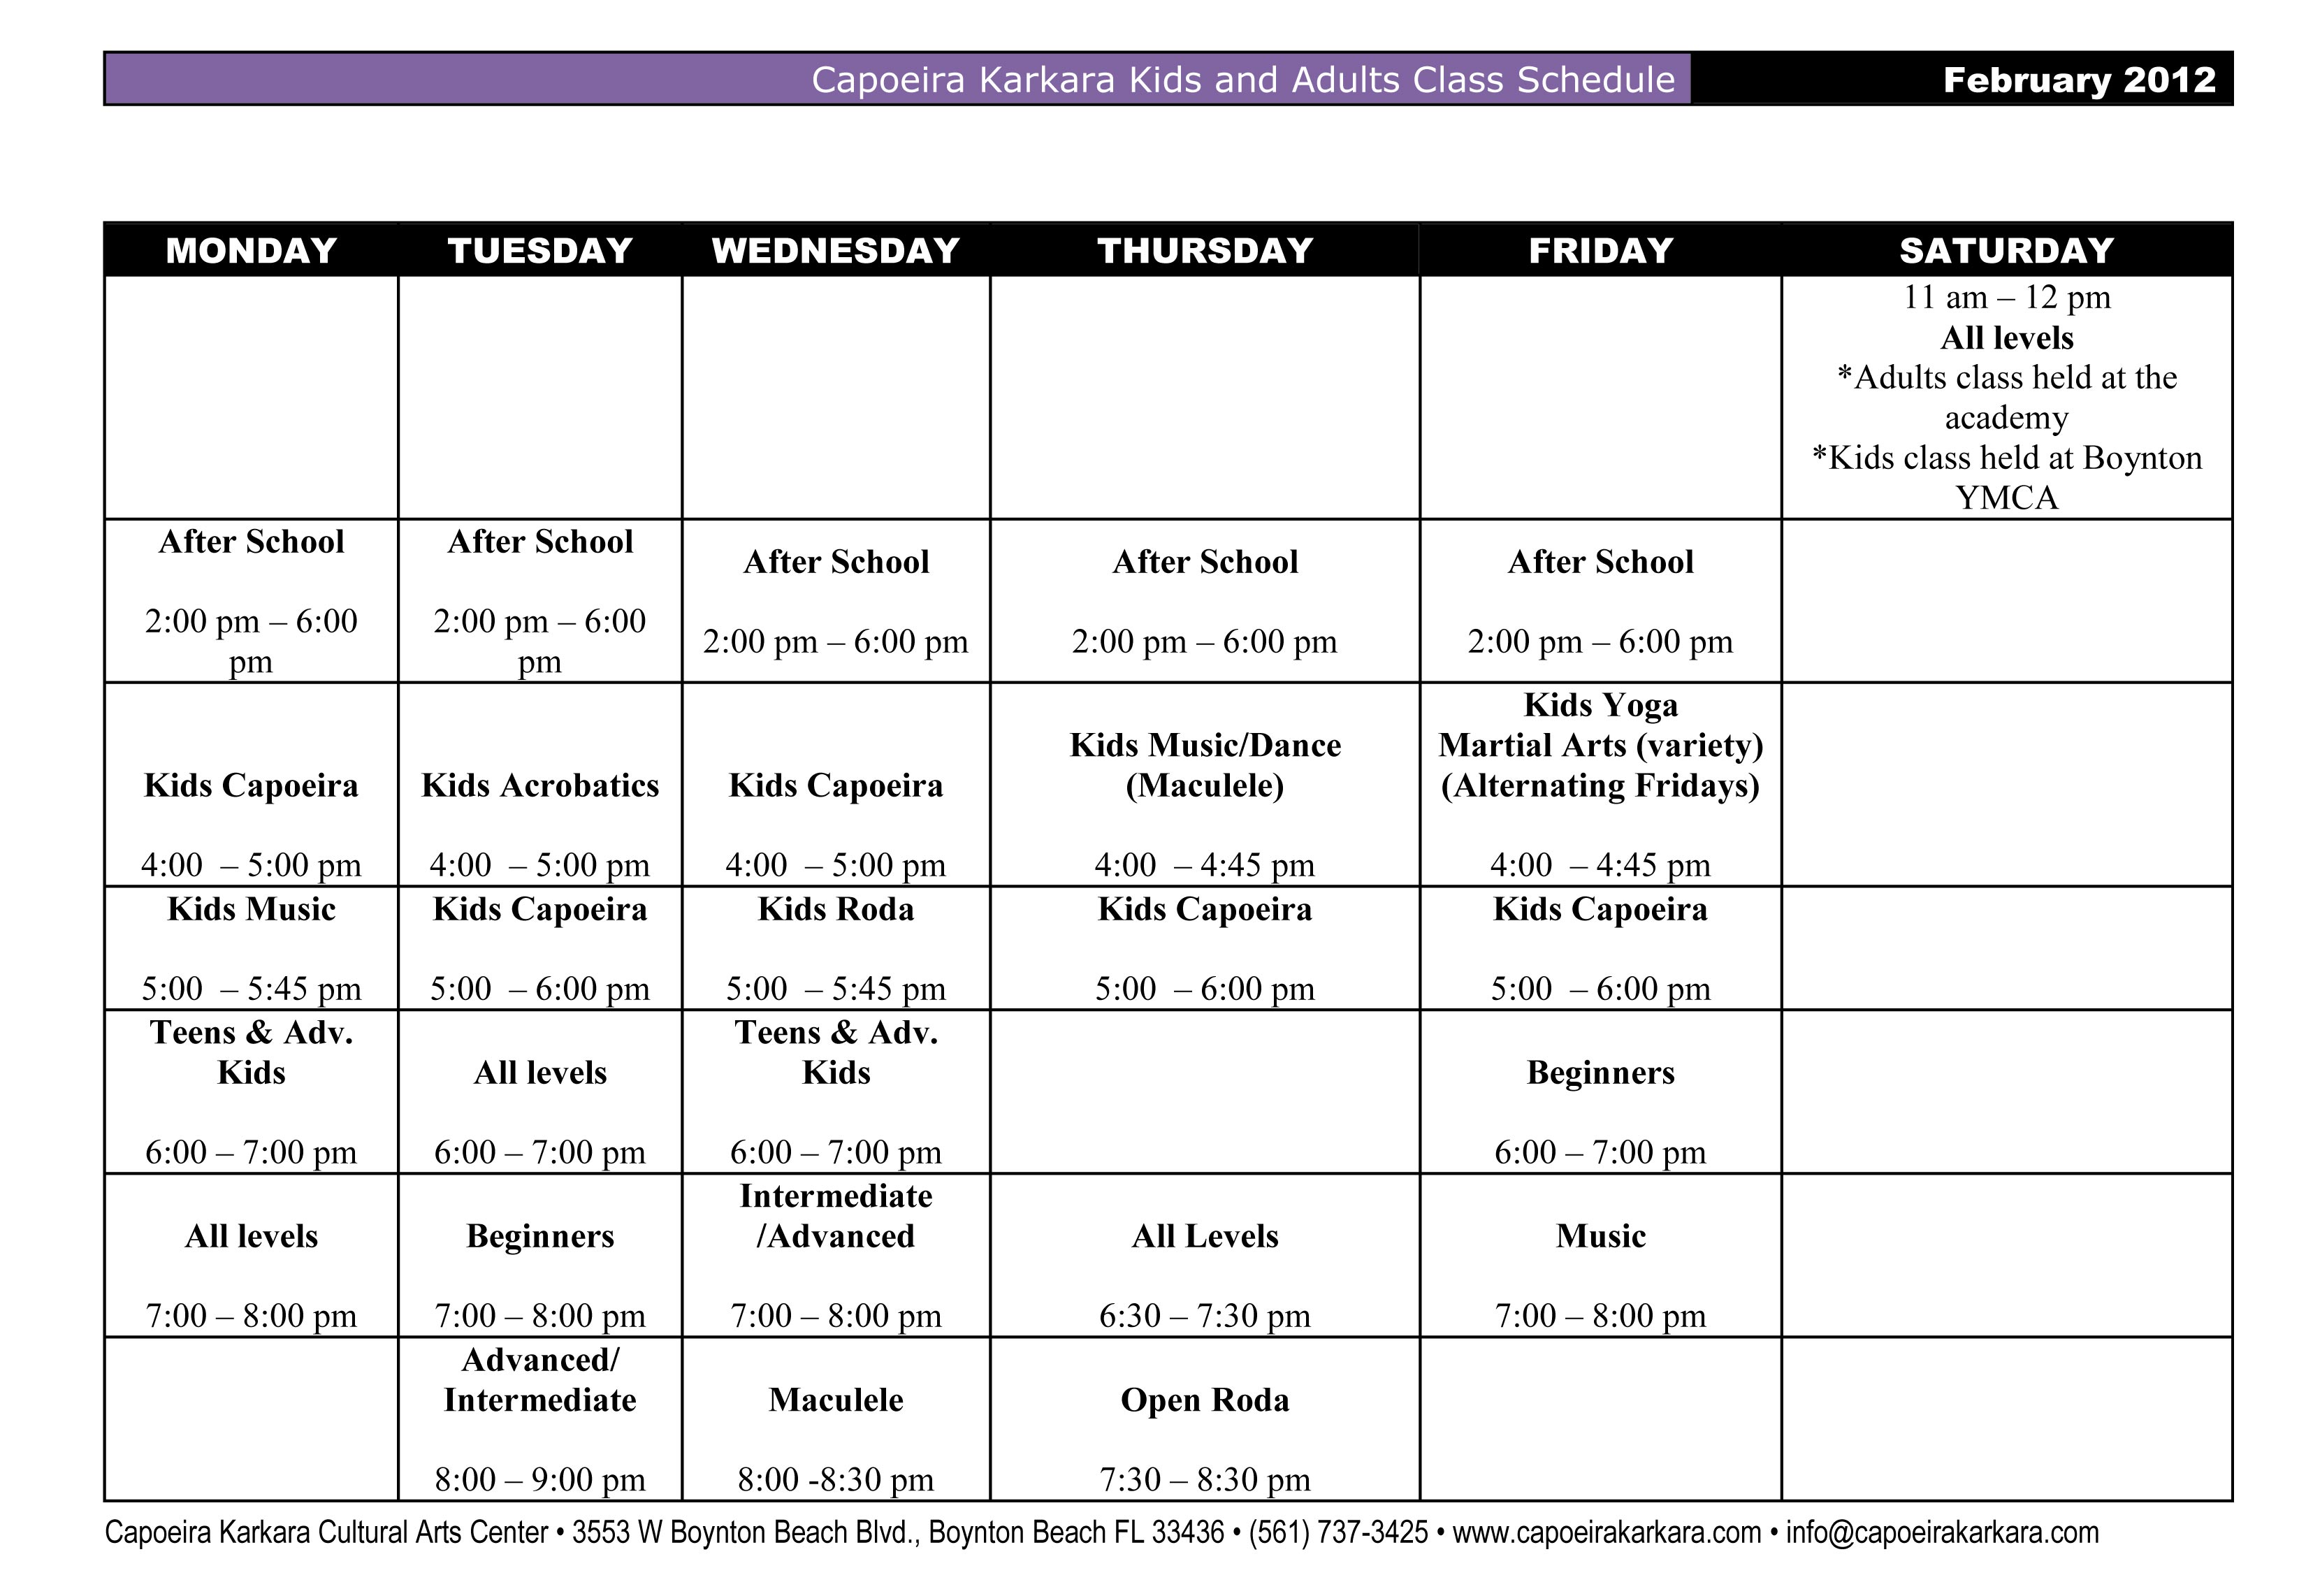 Class Schedule for Kids and Adults Capoeira Classes